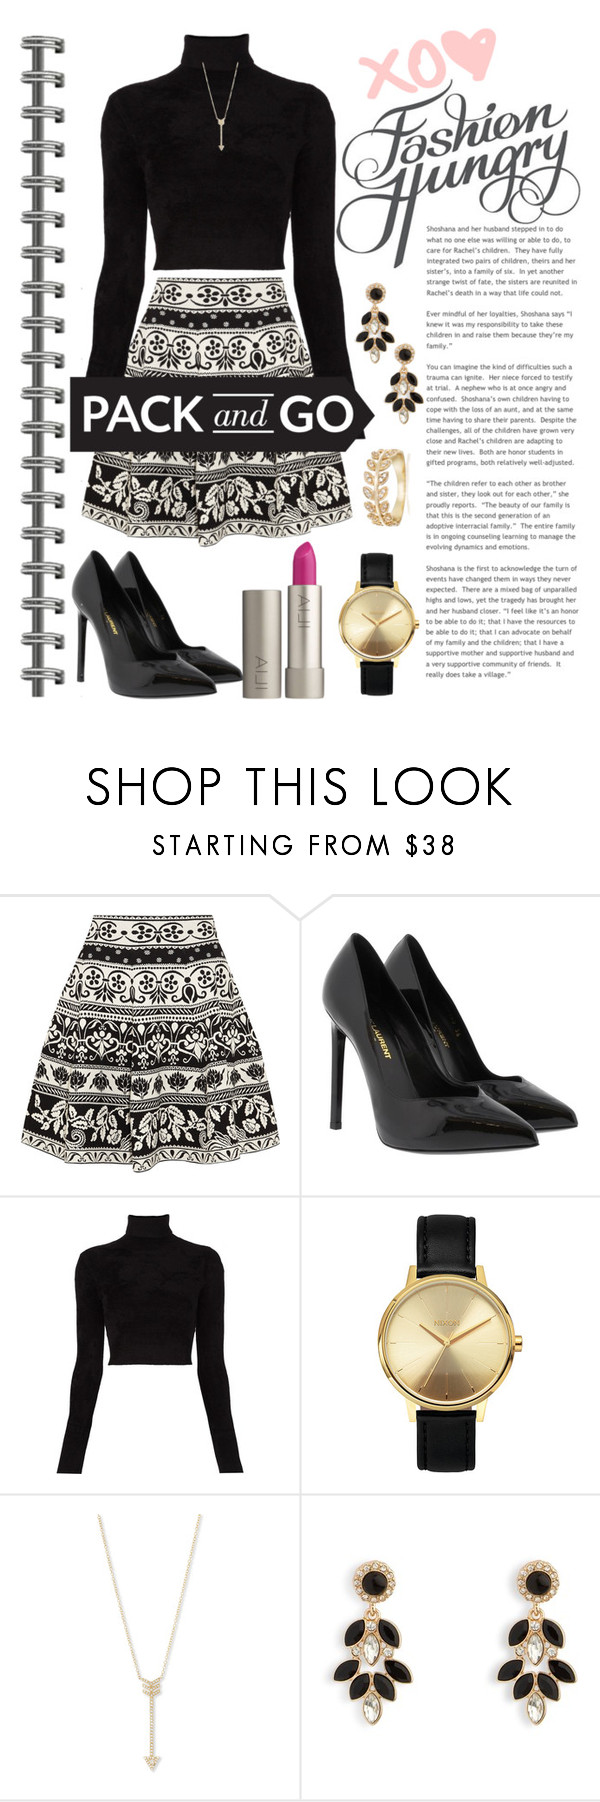 """Packing Up"" by csidlo17 ❤ liked on Polyvore featuring Alexander McQueen, Yves Saint Laurent, A.L.C., Nixon, EF Collection, Vera Bradley and Ross-Simons"